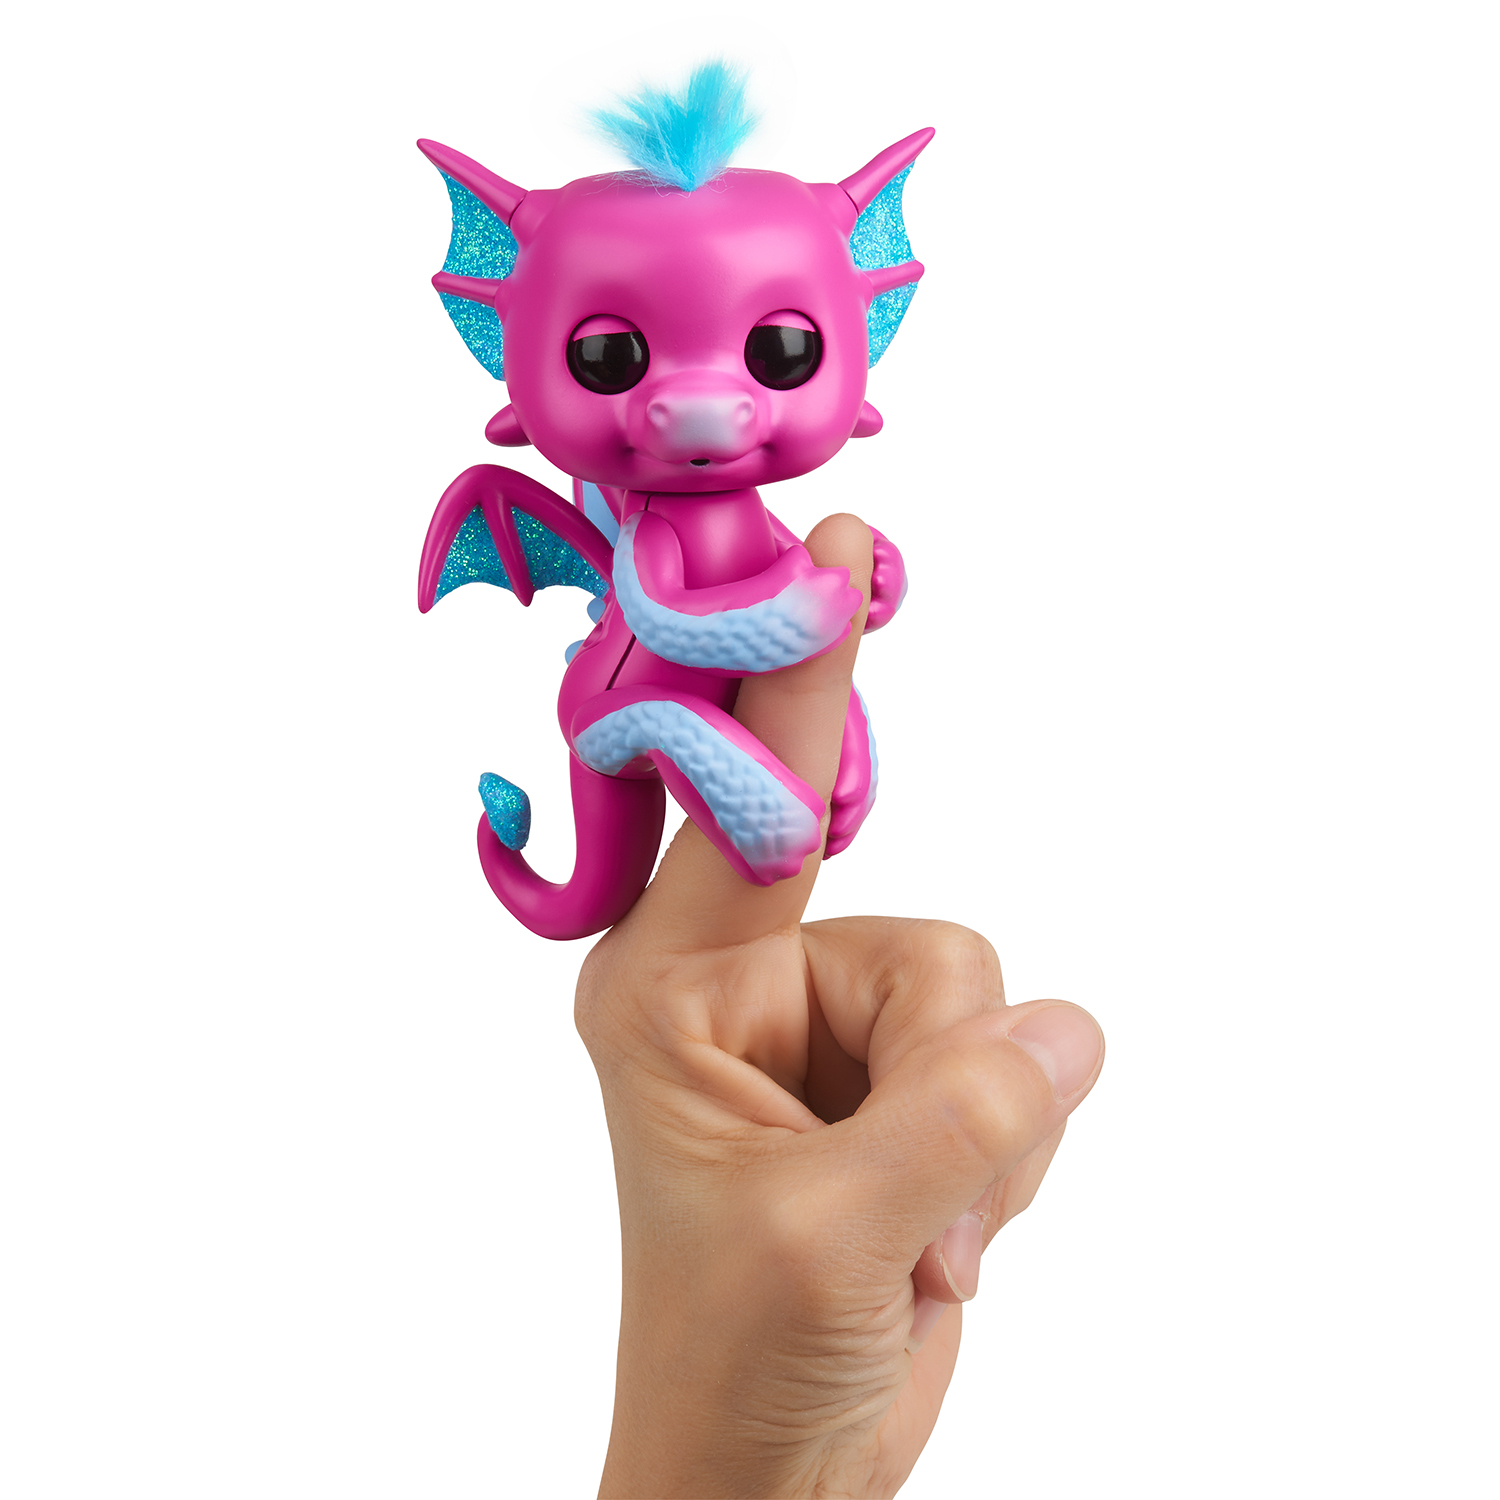 Fingerlings Drache pink mit blauem Glitzer Sandy